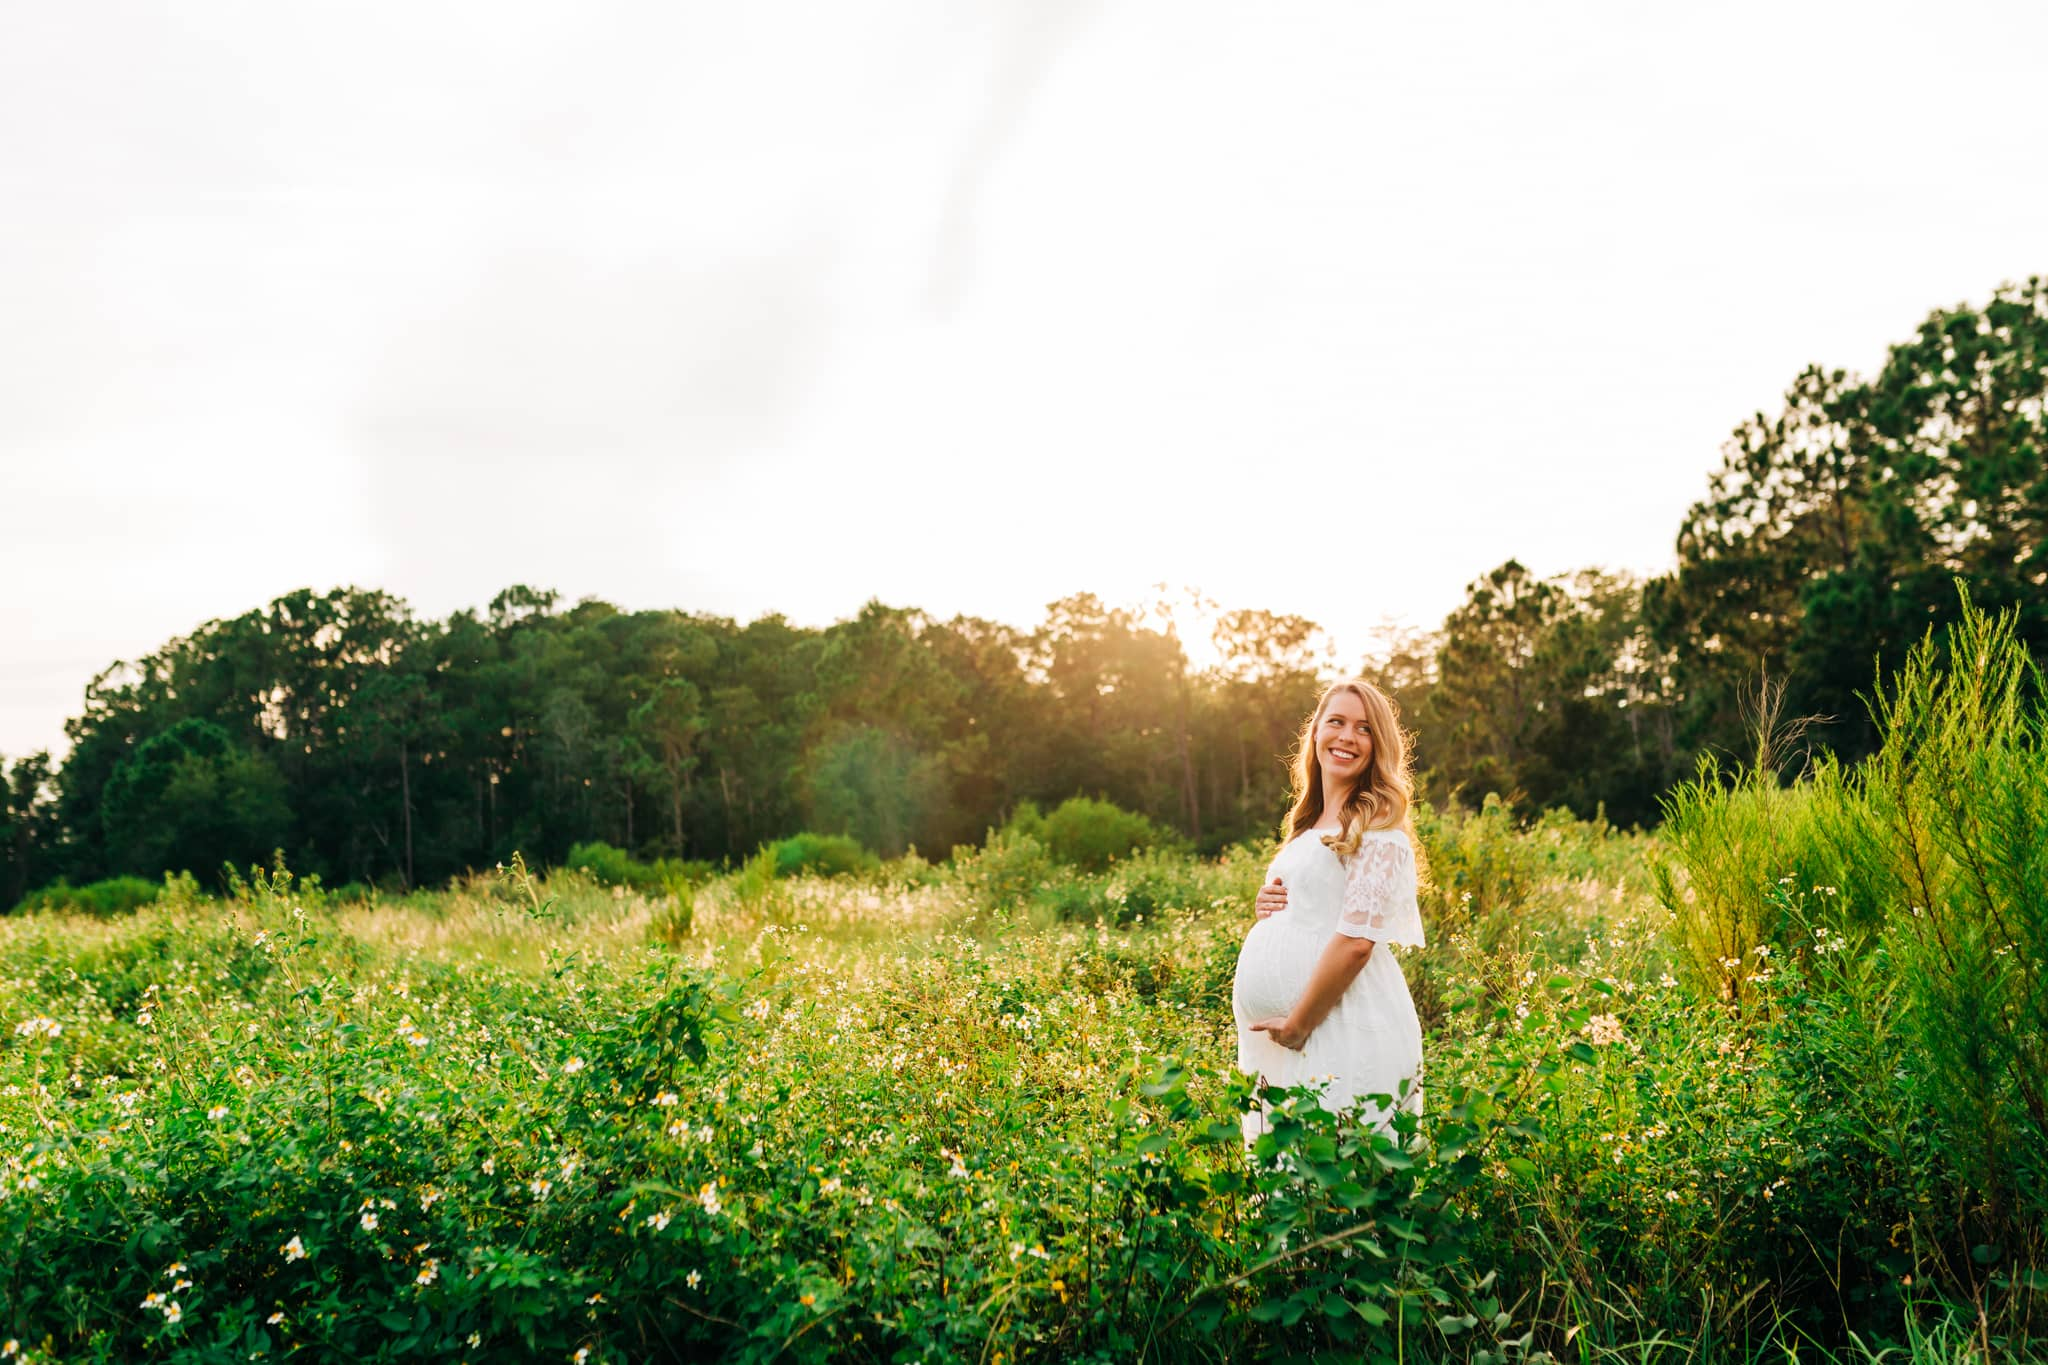 pregnant woman standing in field in white dress with the sun setting behind her in a florida state park